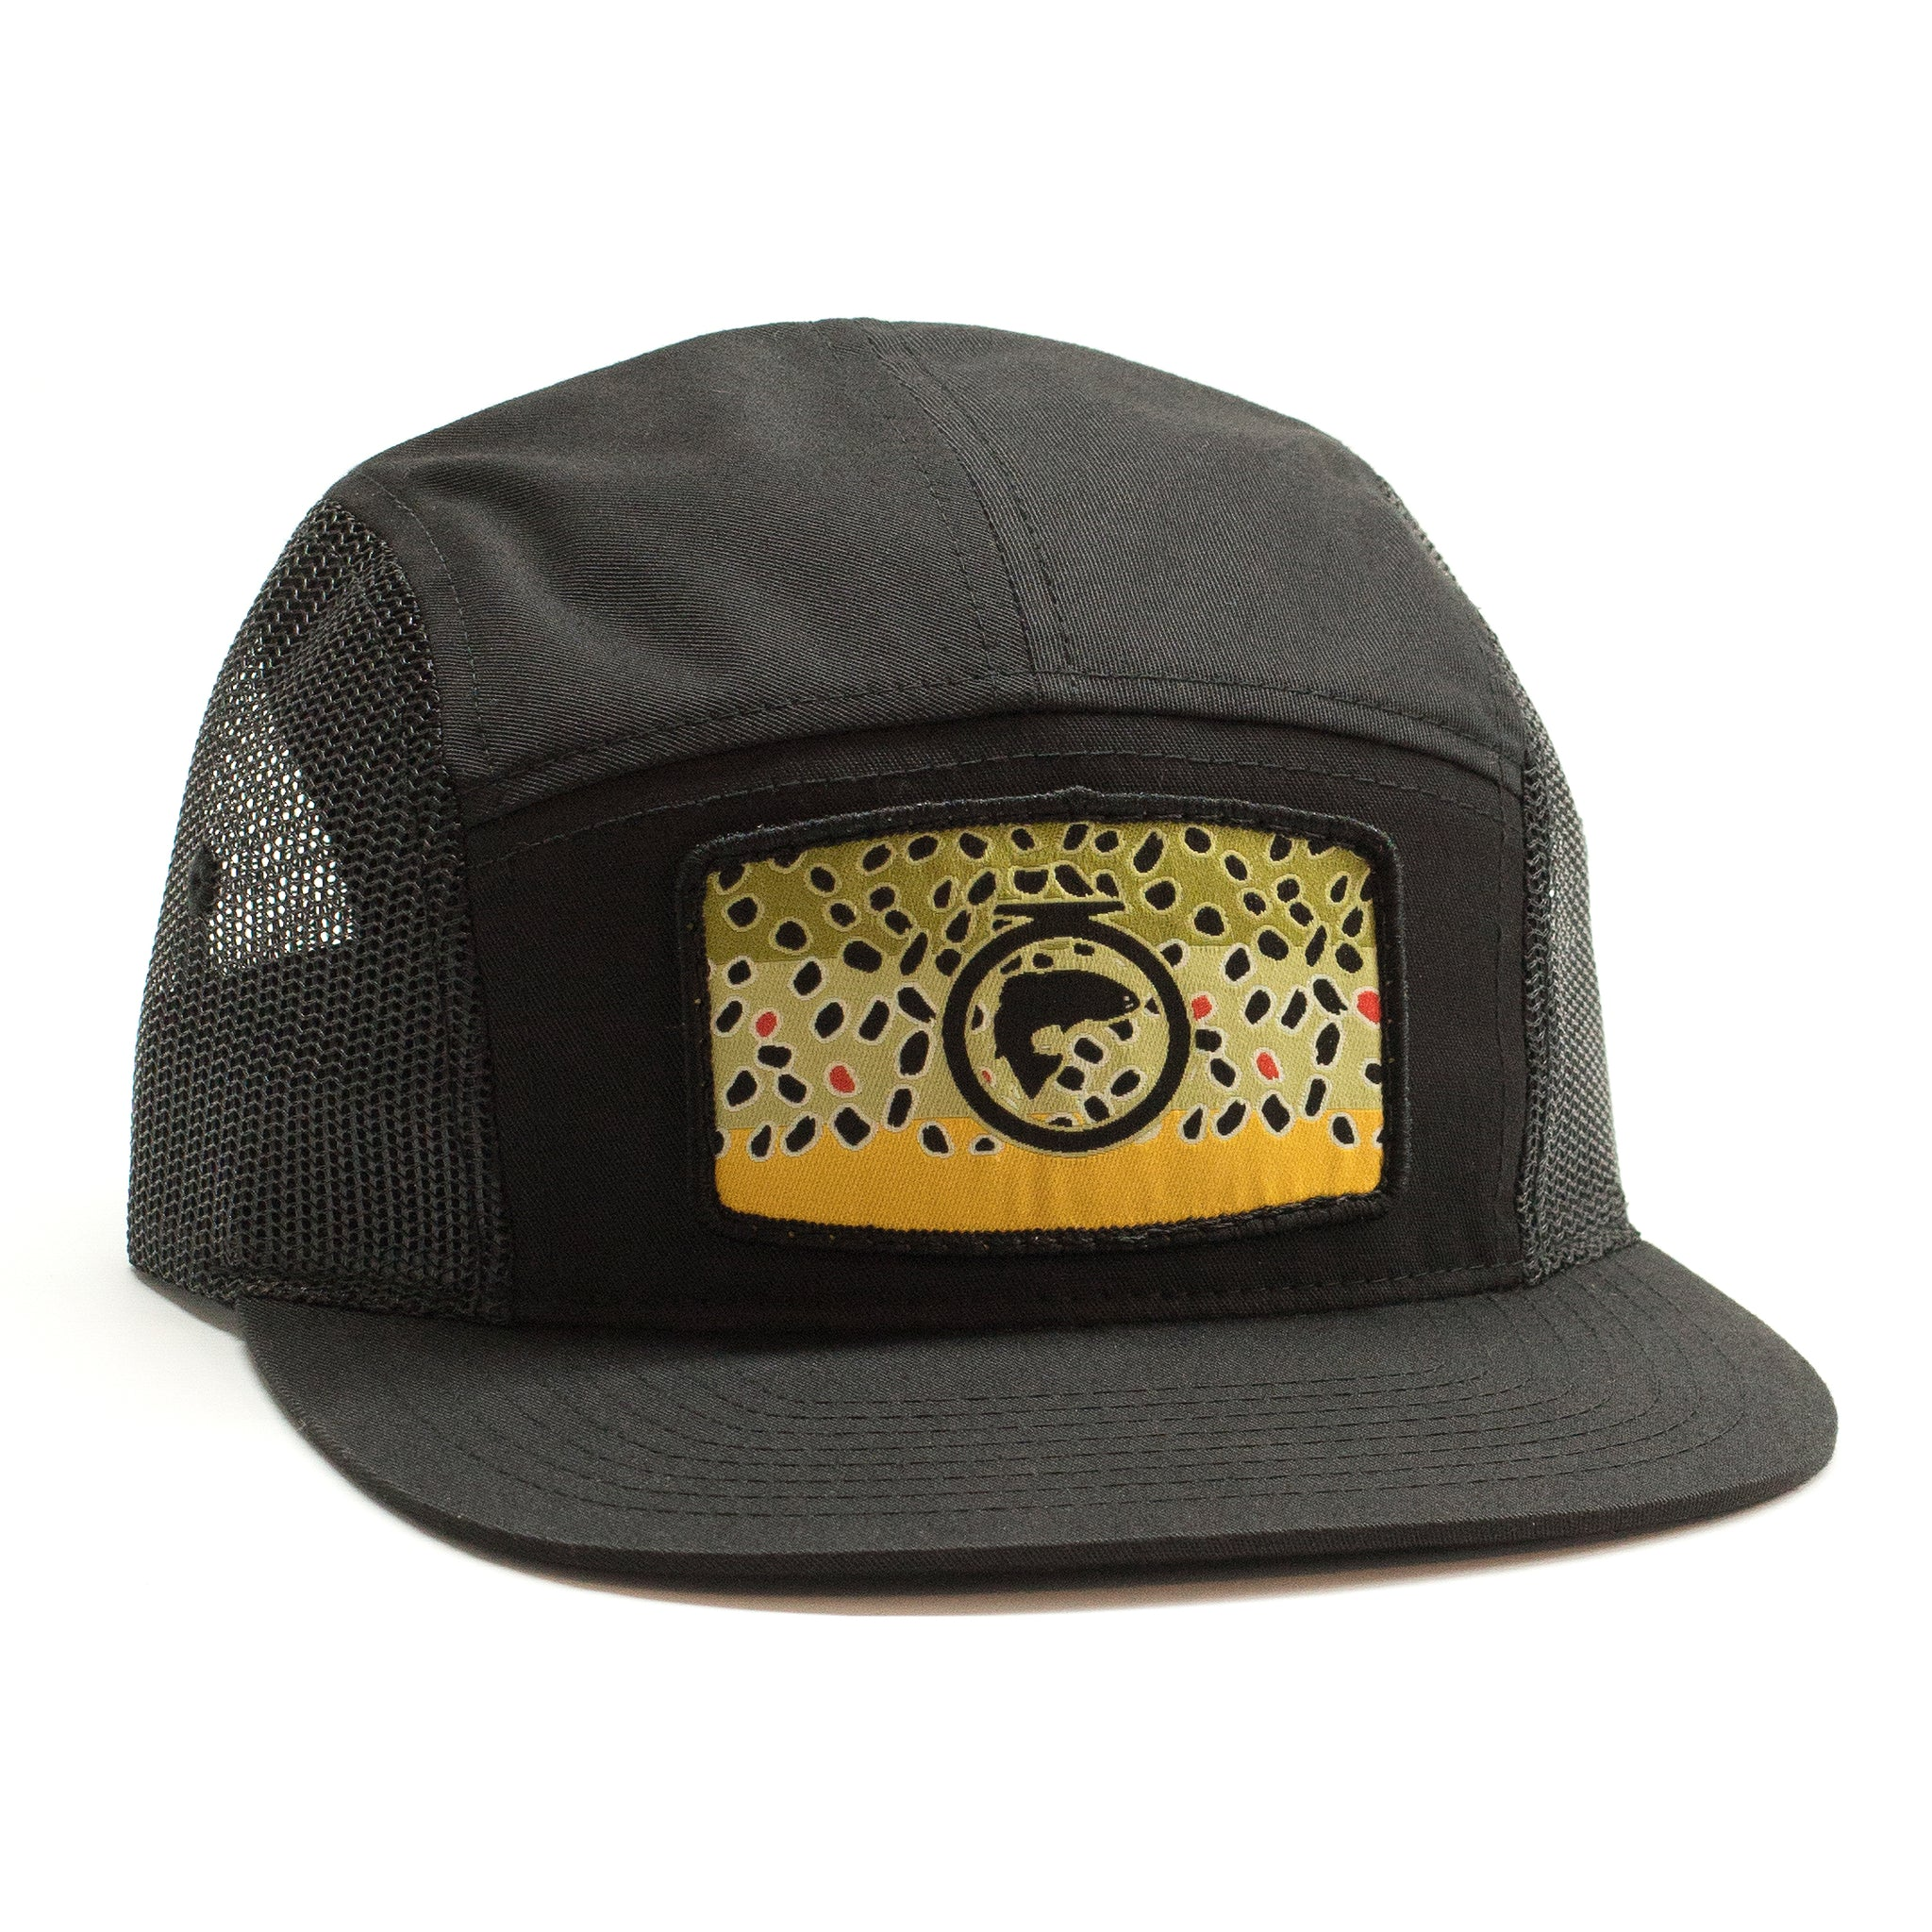 The Camp Hat - Brown Trout Patch 838b025751e